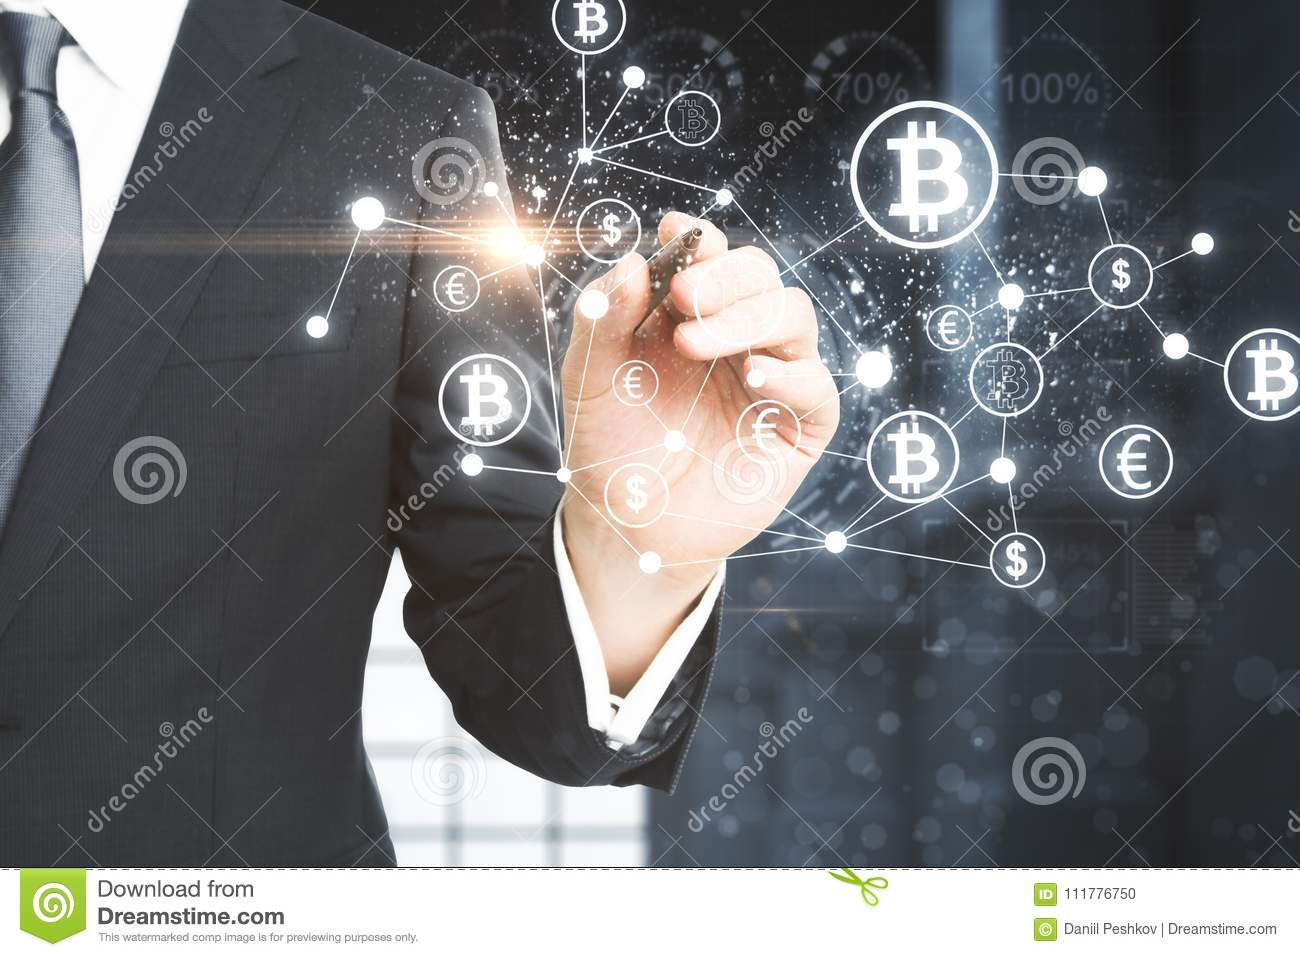 Cryptocurrency and computer concept